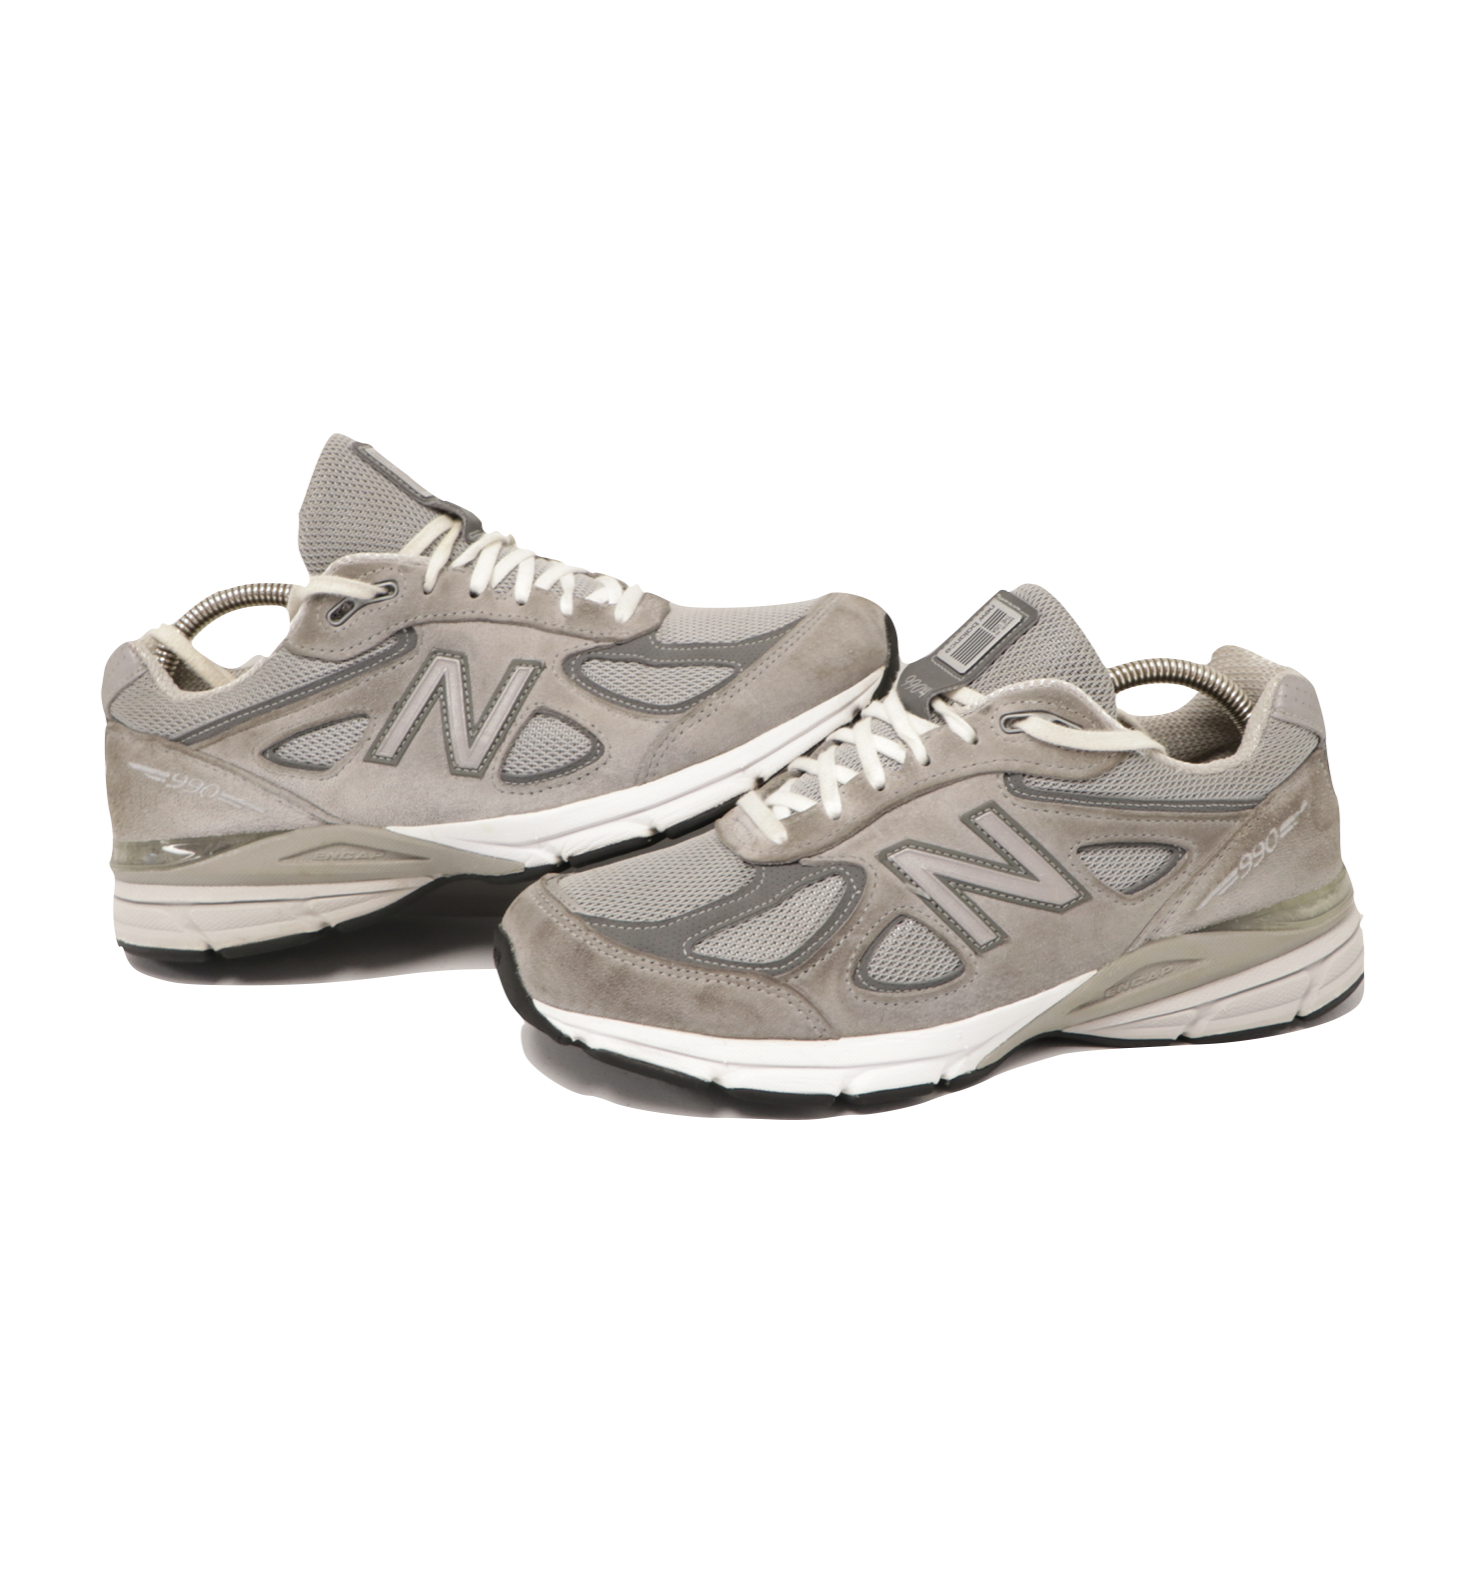 New Balance 990v4 Womens Size 9 Suede